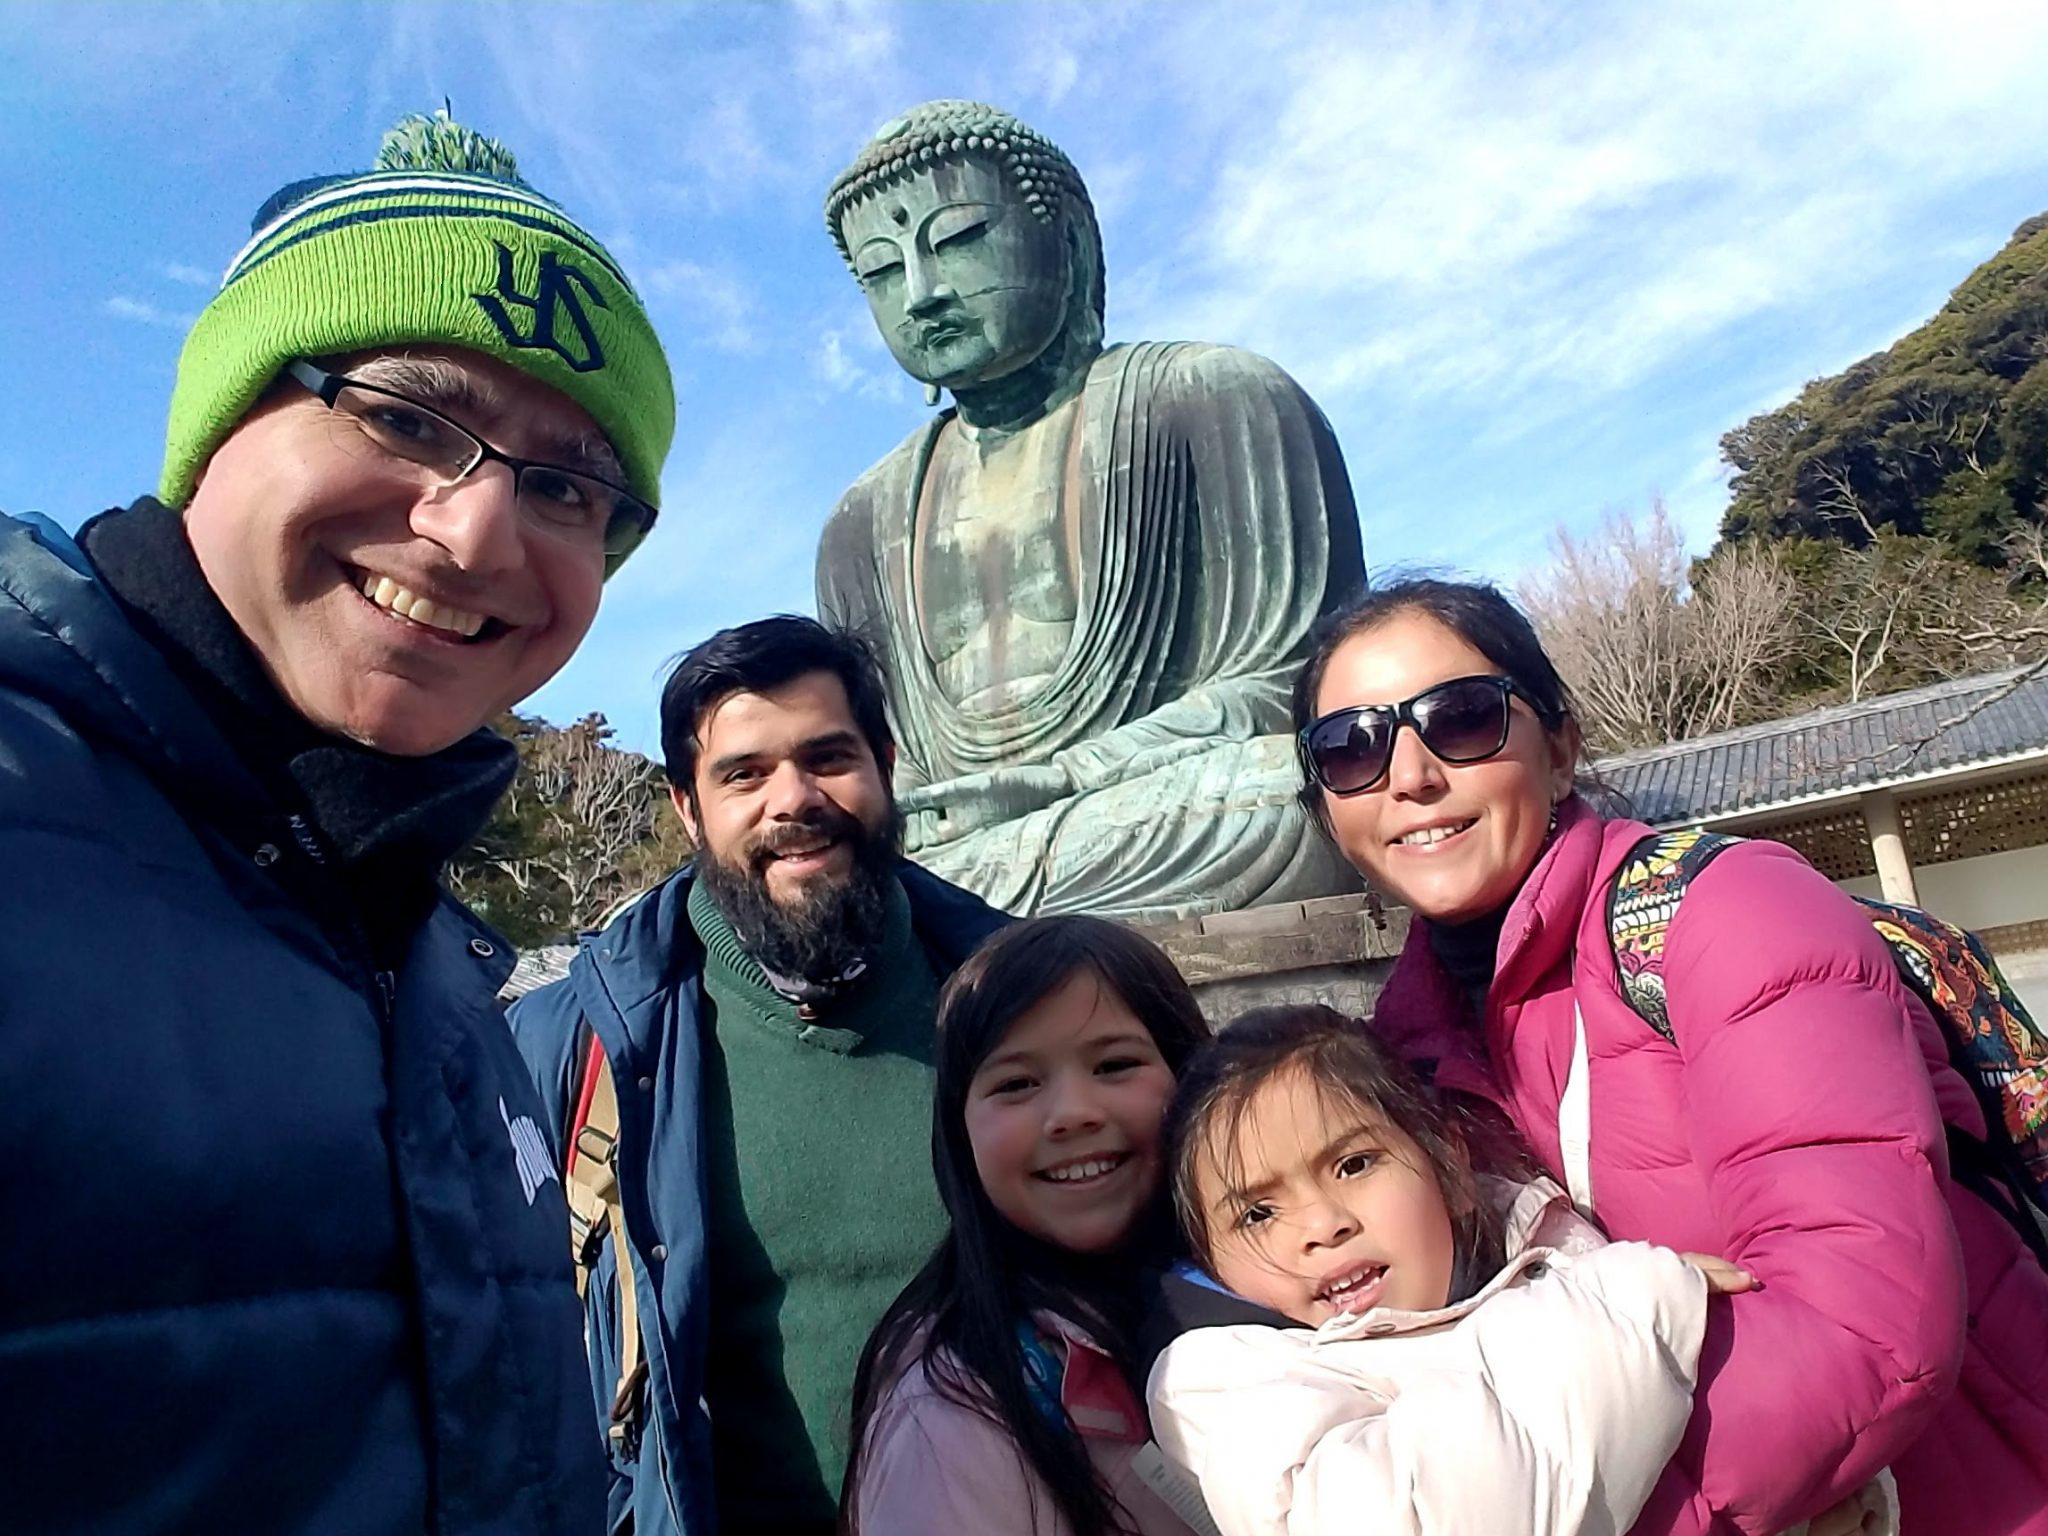 Giant Buddha with family from Chile on a Maction Tokyo Private Tour